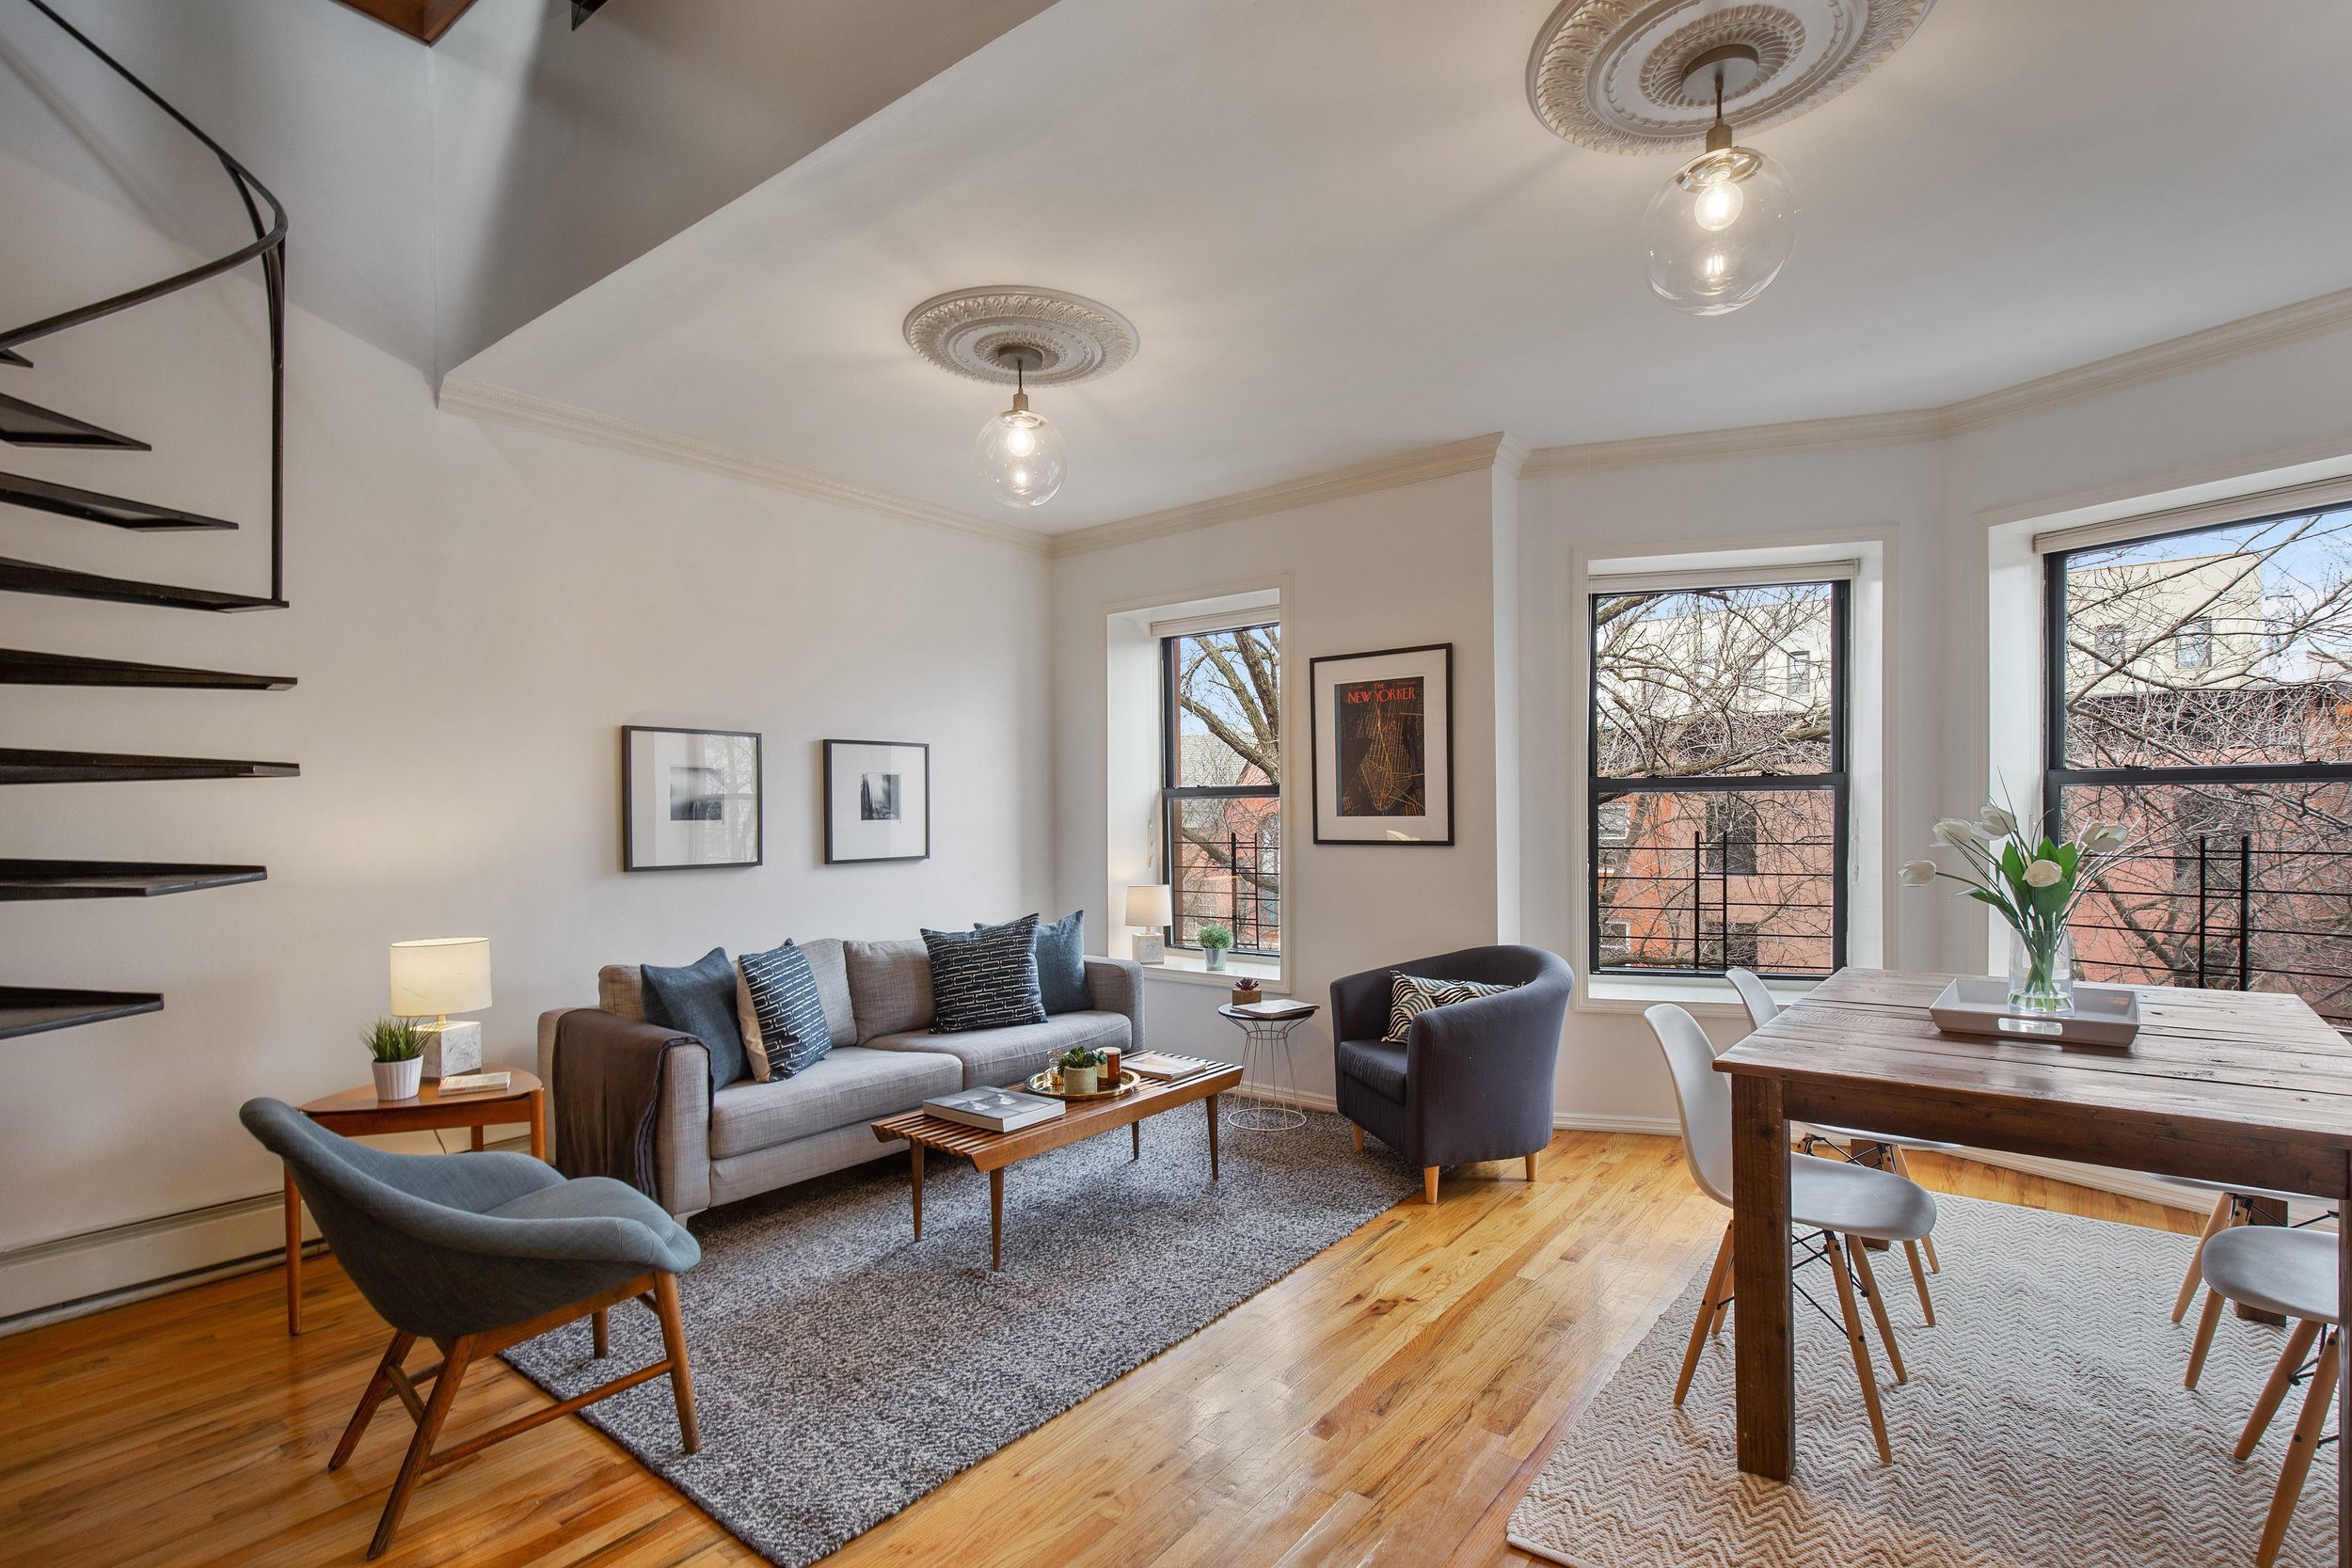 474 Waverly Avenue - Apt. 3, Clinton hill, BK